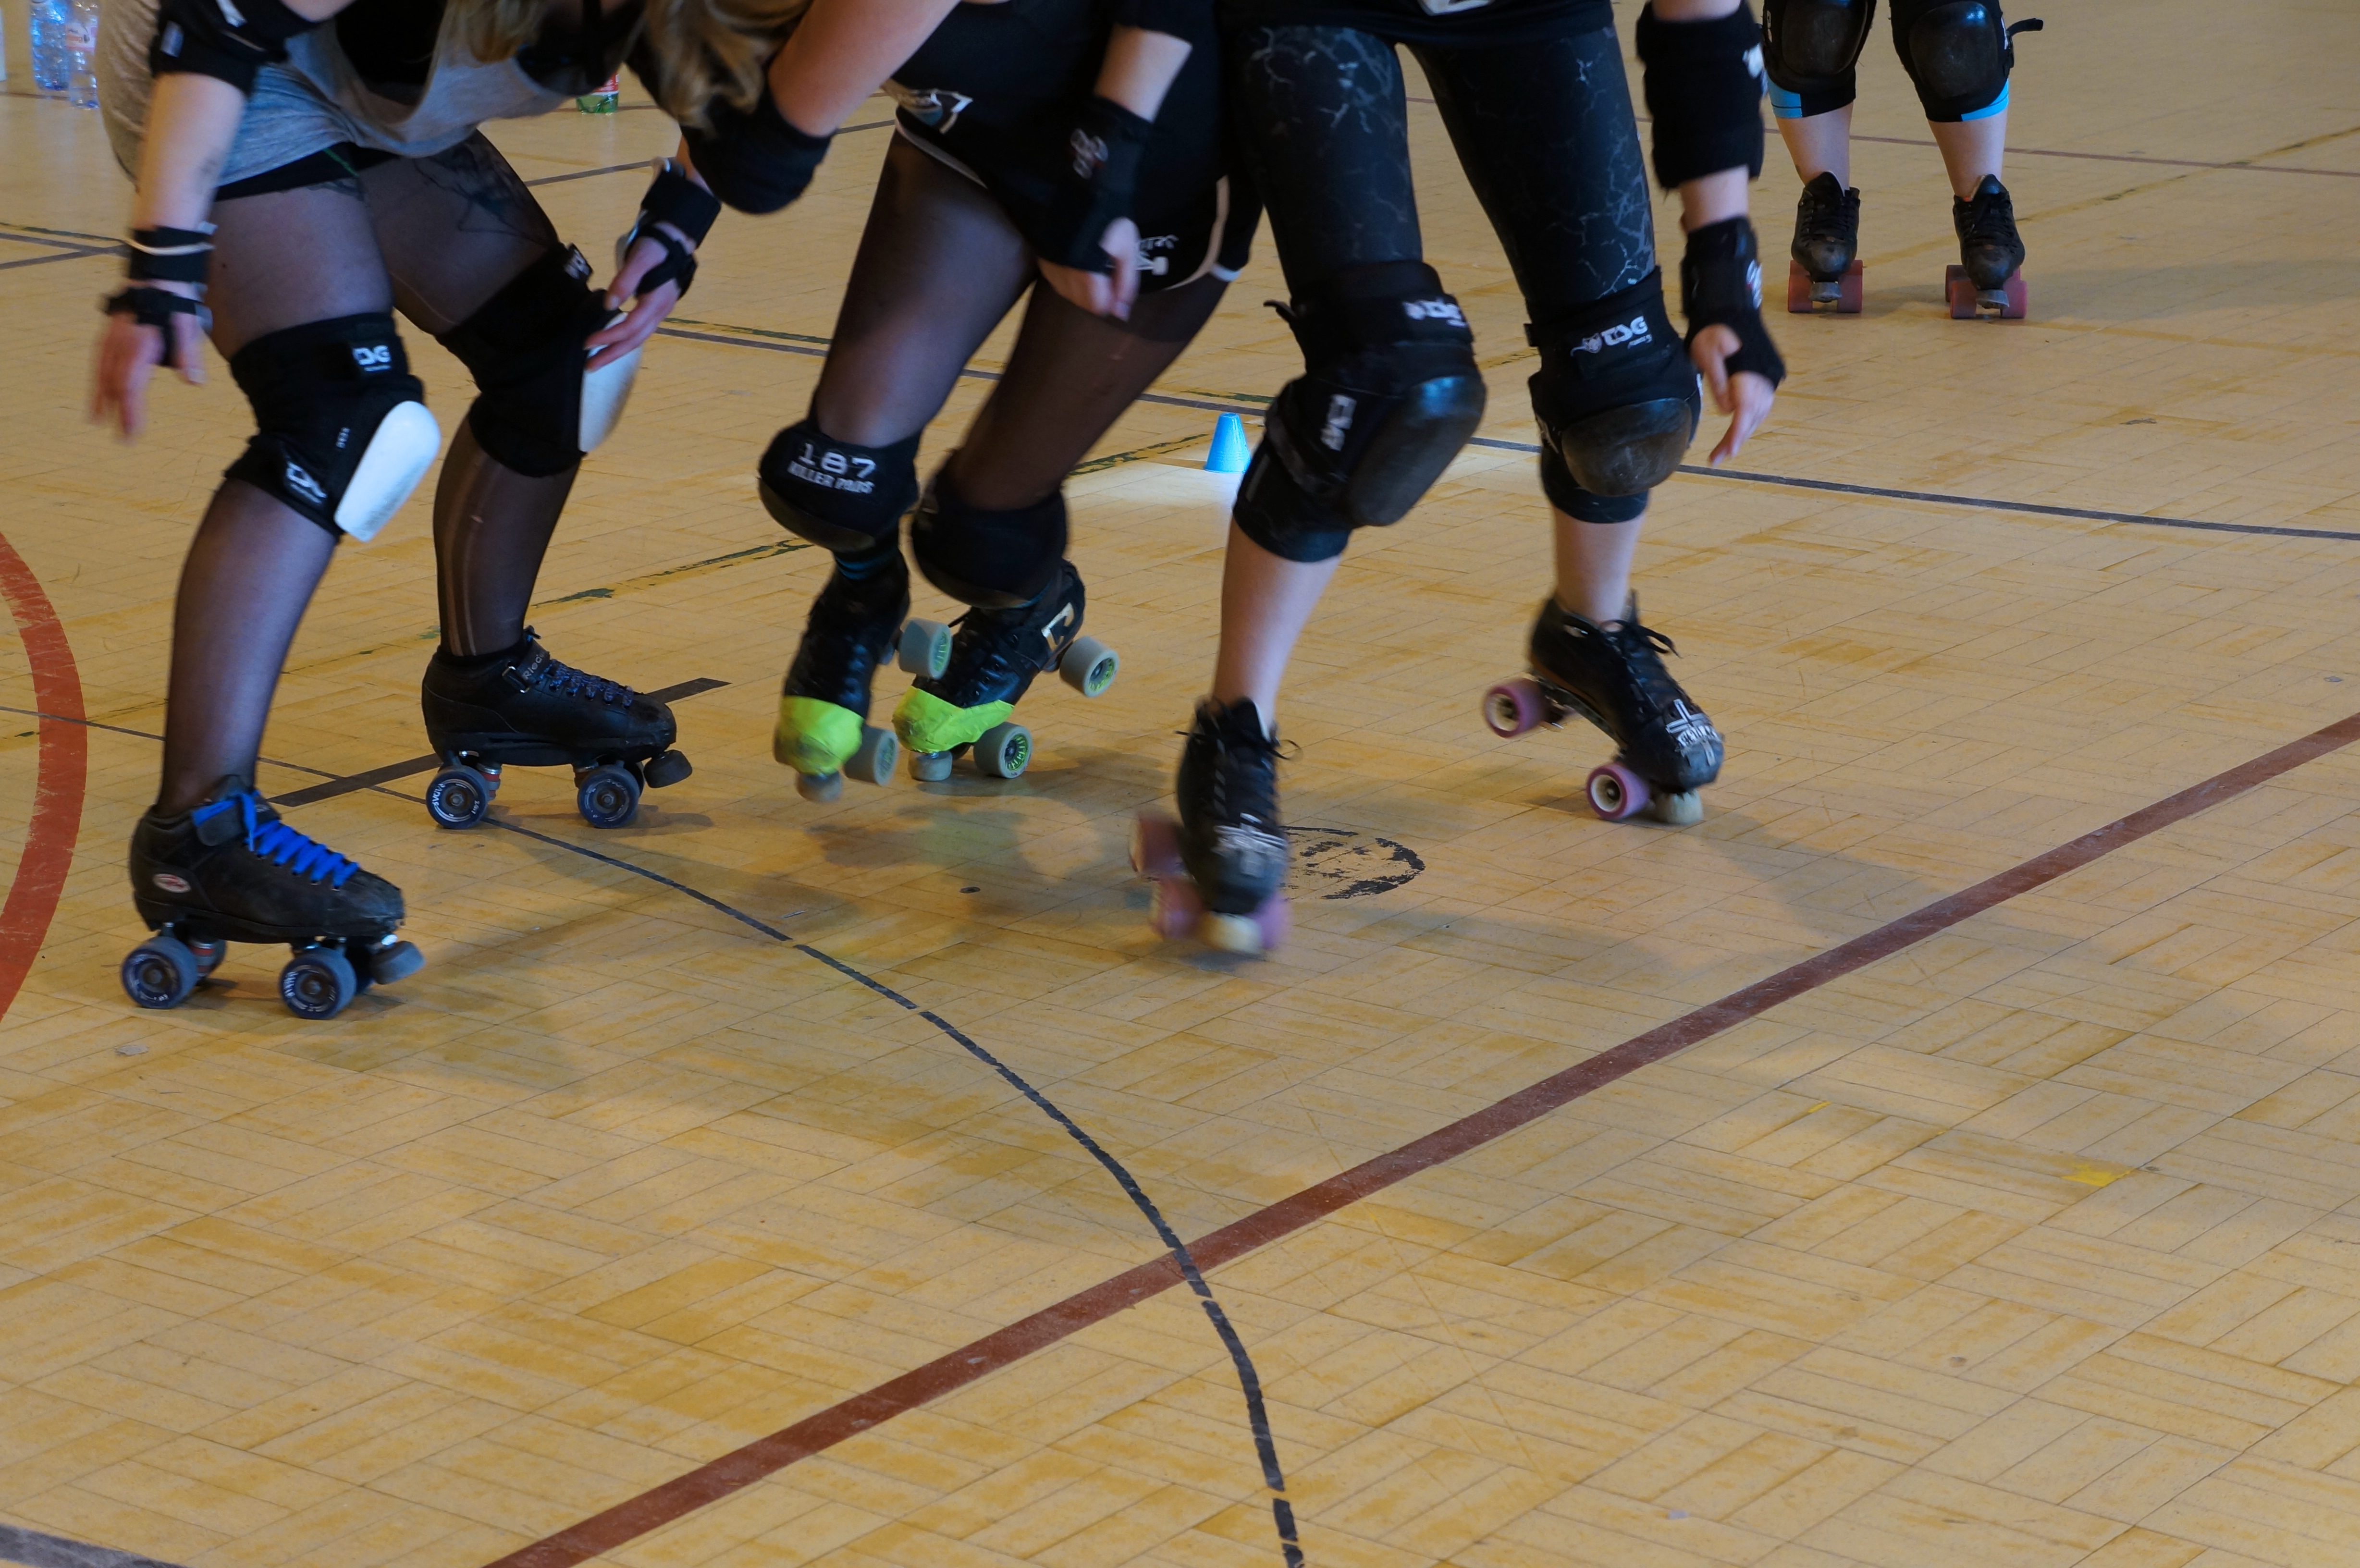 Les Dissidentes Roller Derby Liège / Pic by 1FDLE.